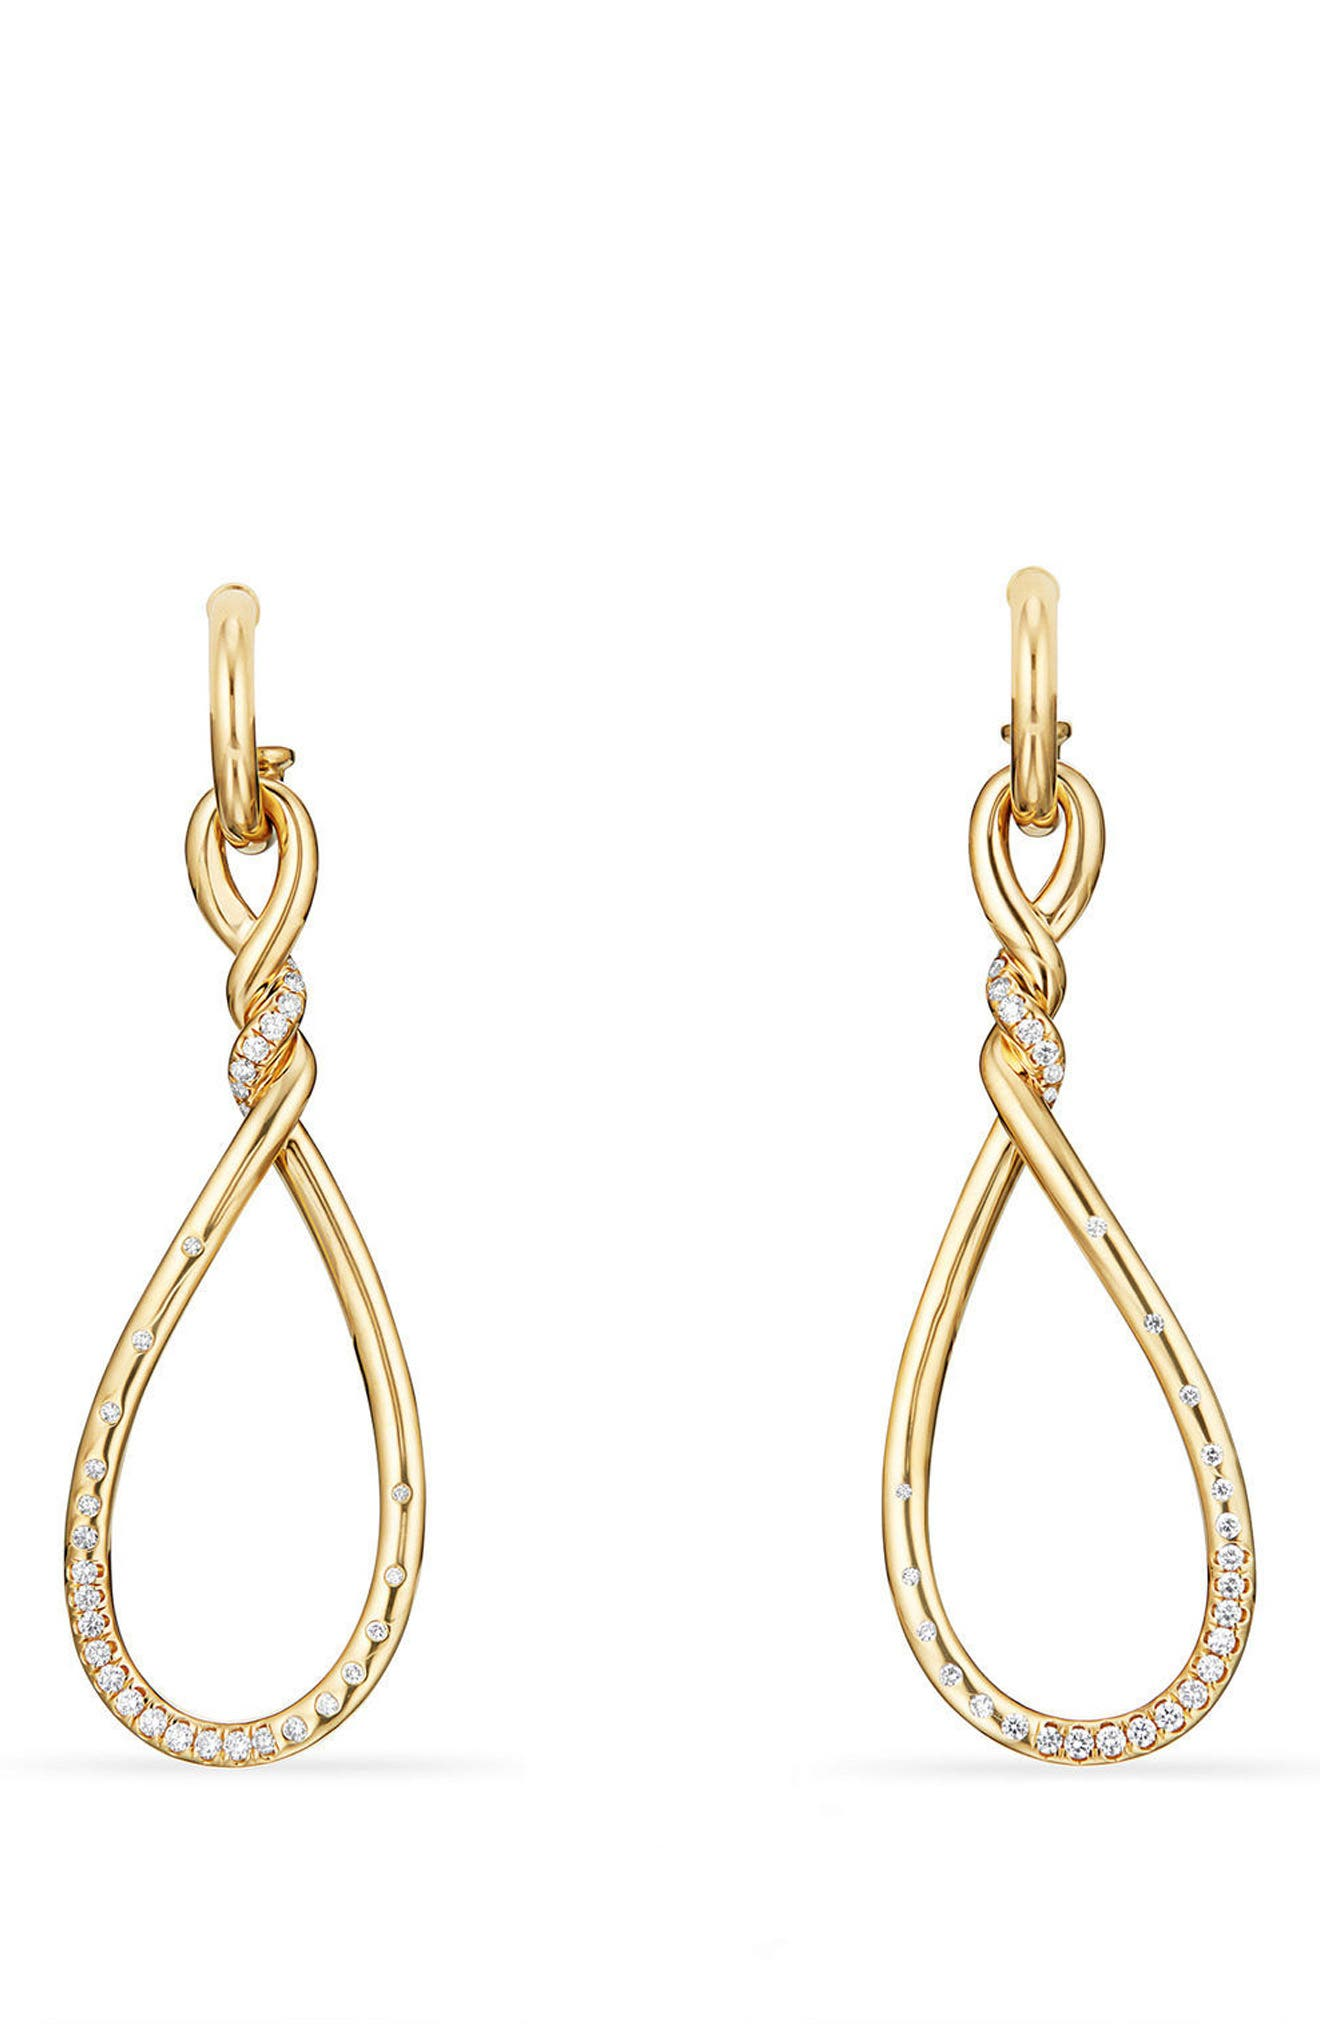 Continuance Large Drop Earrings with Diamonds in 18K Gold,                             Main thumbnail 1, color,                             YELLOW GOLD